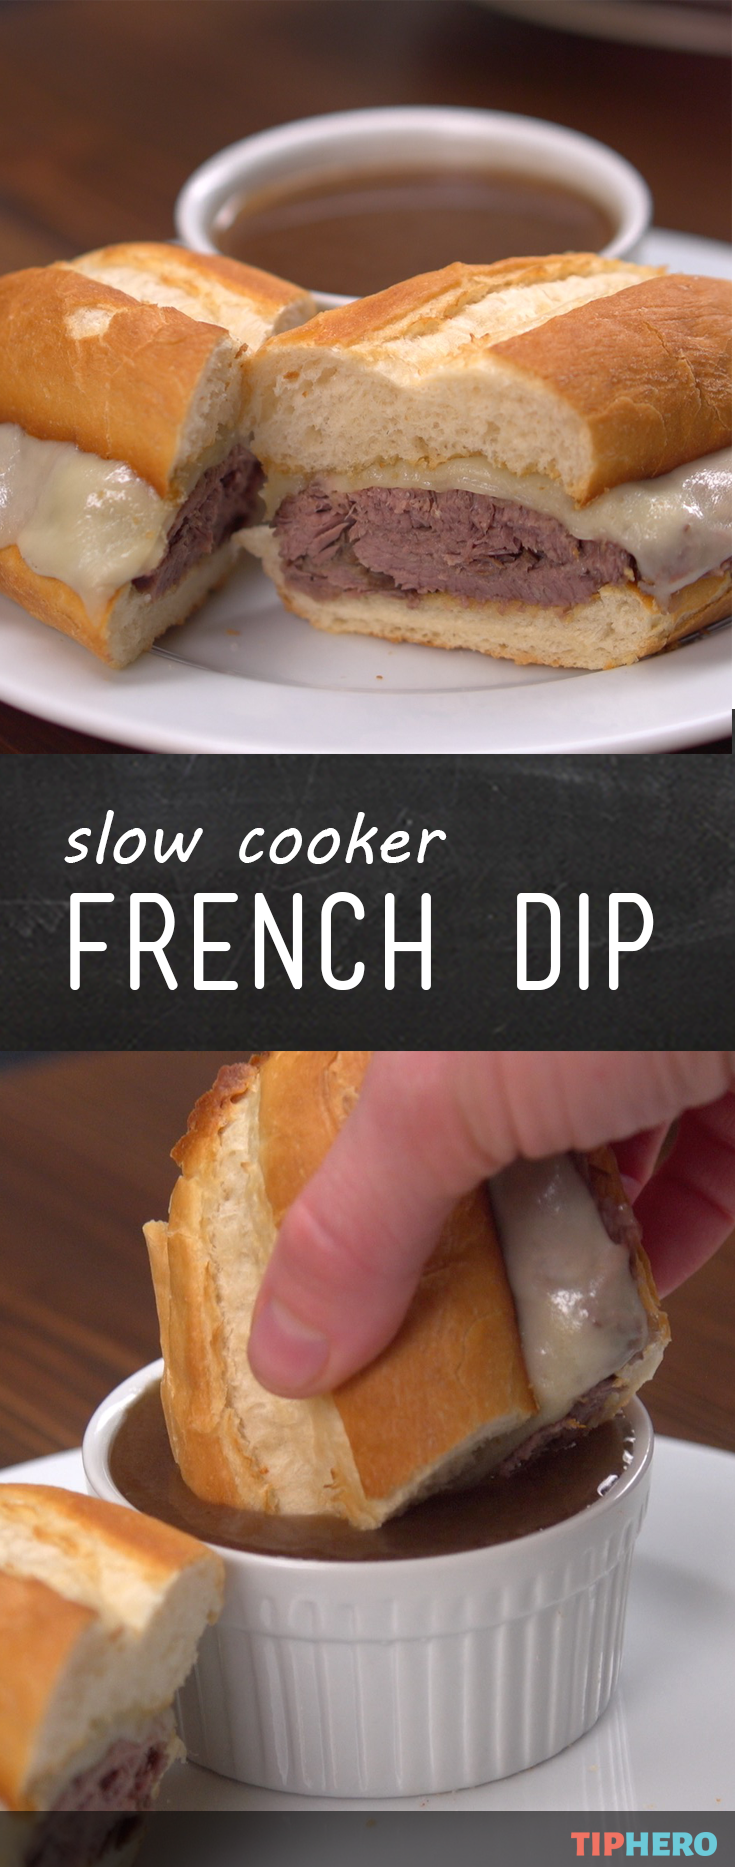 Here's a game day meal that won't disappoint -- slow cooker French dip sandwiches! Click to see how it's done.   #frenchdip #easyrecipes #footballfavs #crowdpleasers (French Bread Sandwich Recipes)